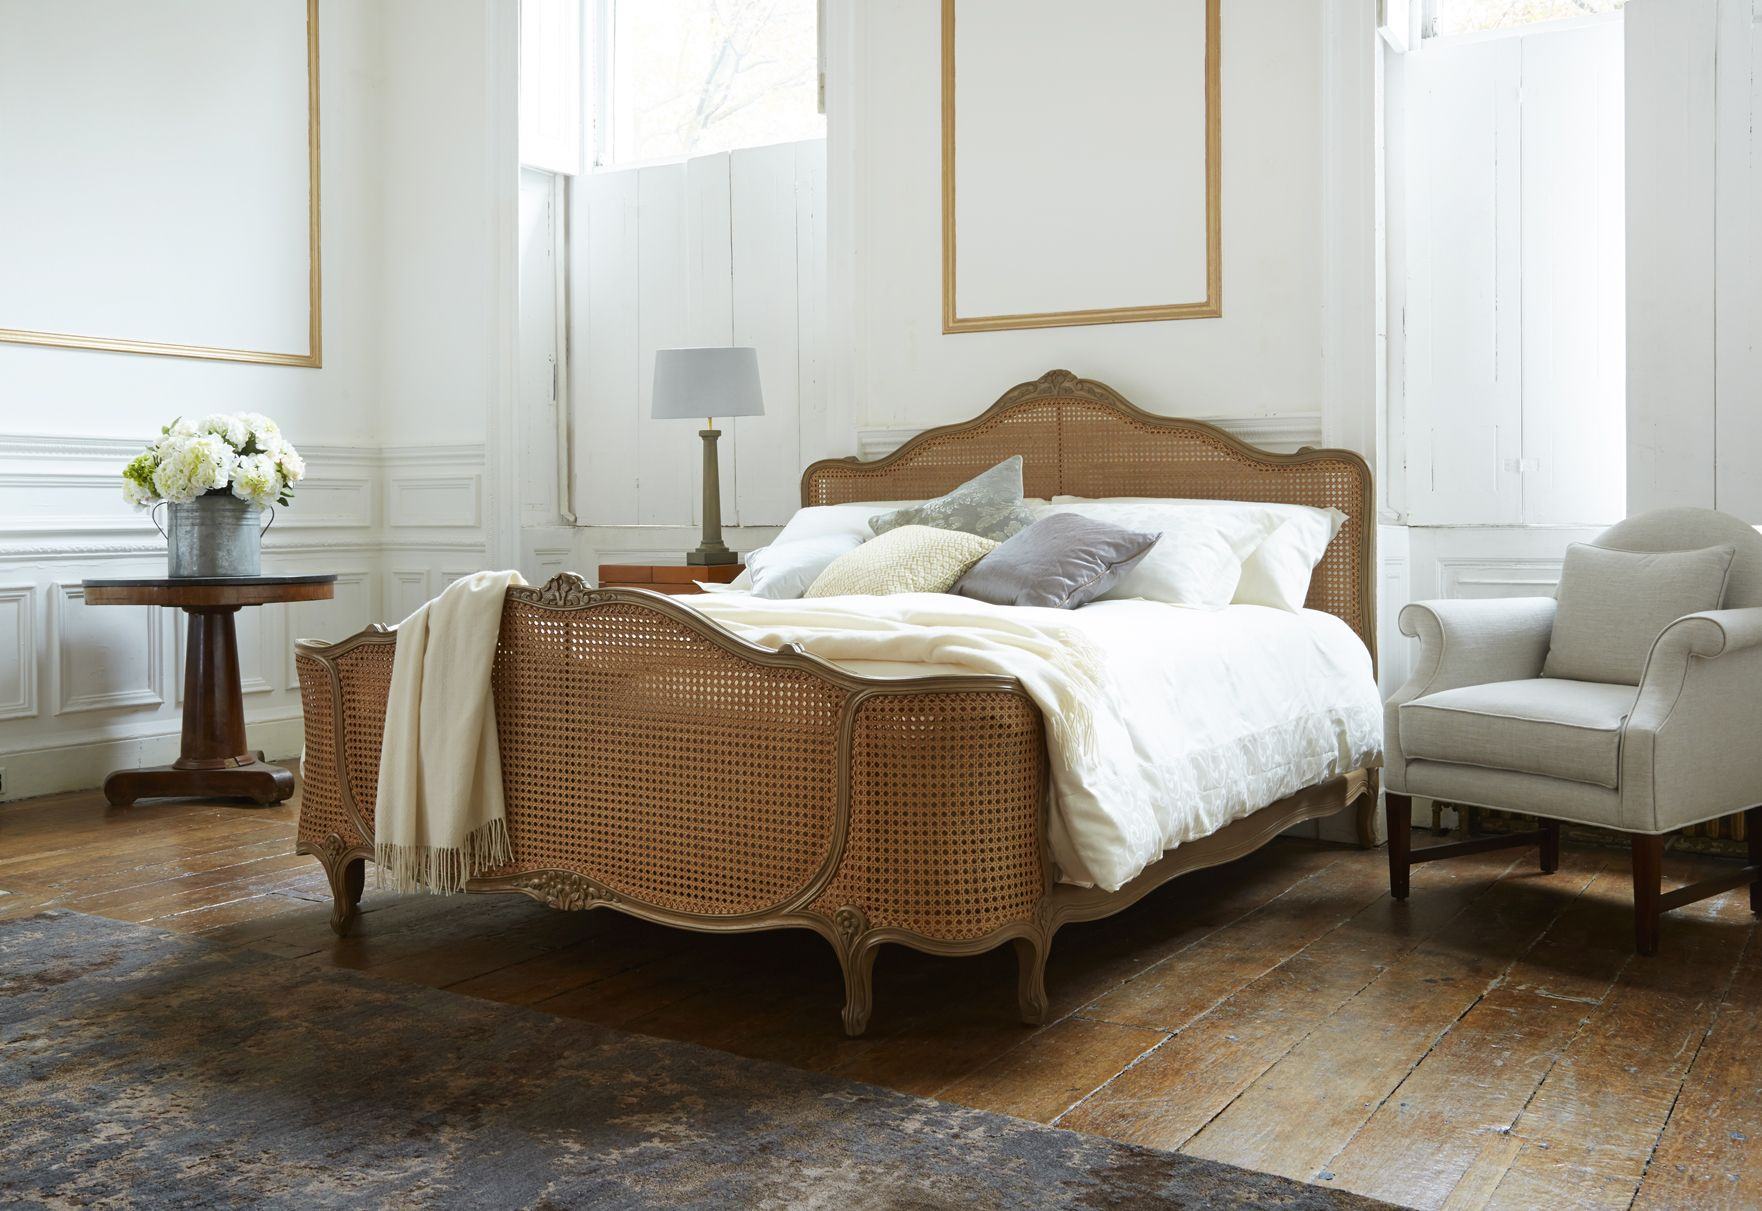 The Romantic Reine De France Has Been One Of The Our Best Loved